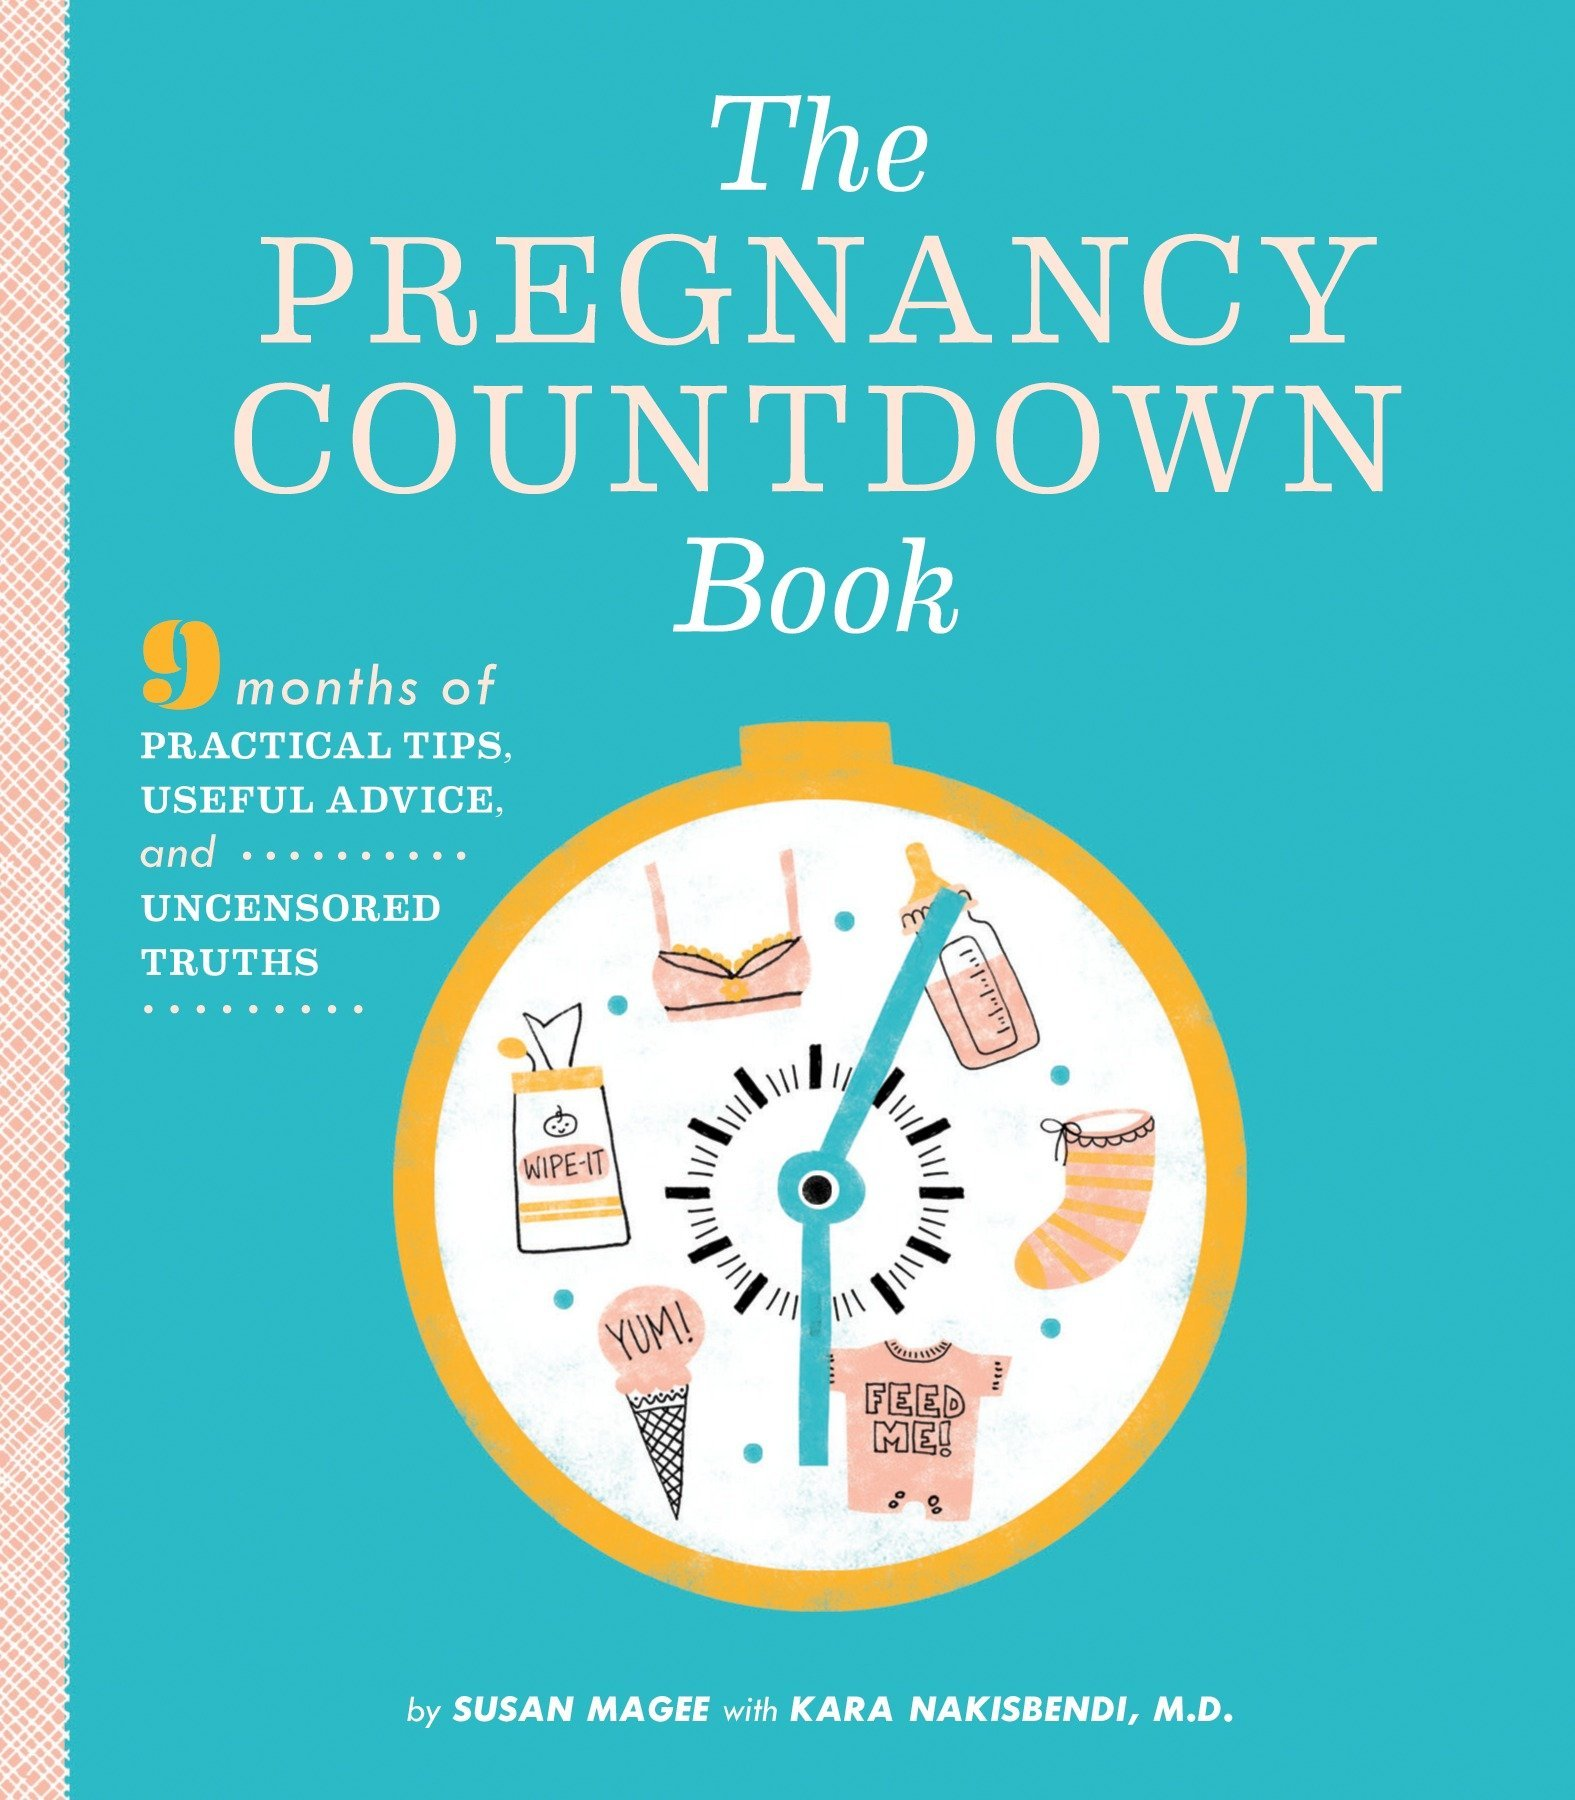 The Pregnancy Countdown Book: Nine Months of Practical Tips, Useful Advice, and Uncensored Truths: Susan Magee, Kara Nakisbendi M.D.: 9781594745737: ...